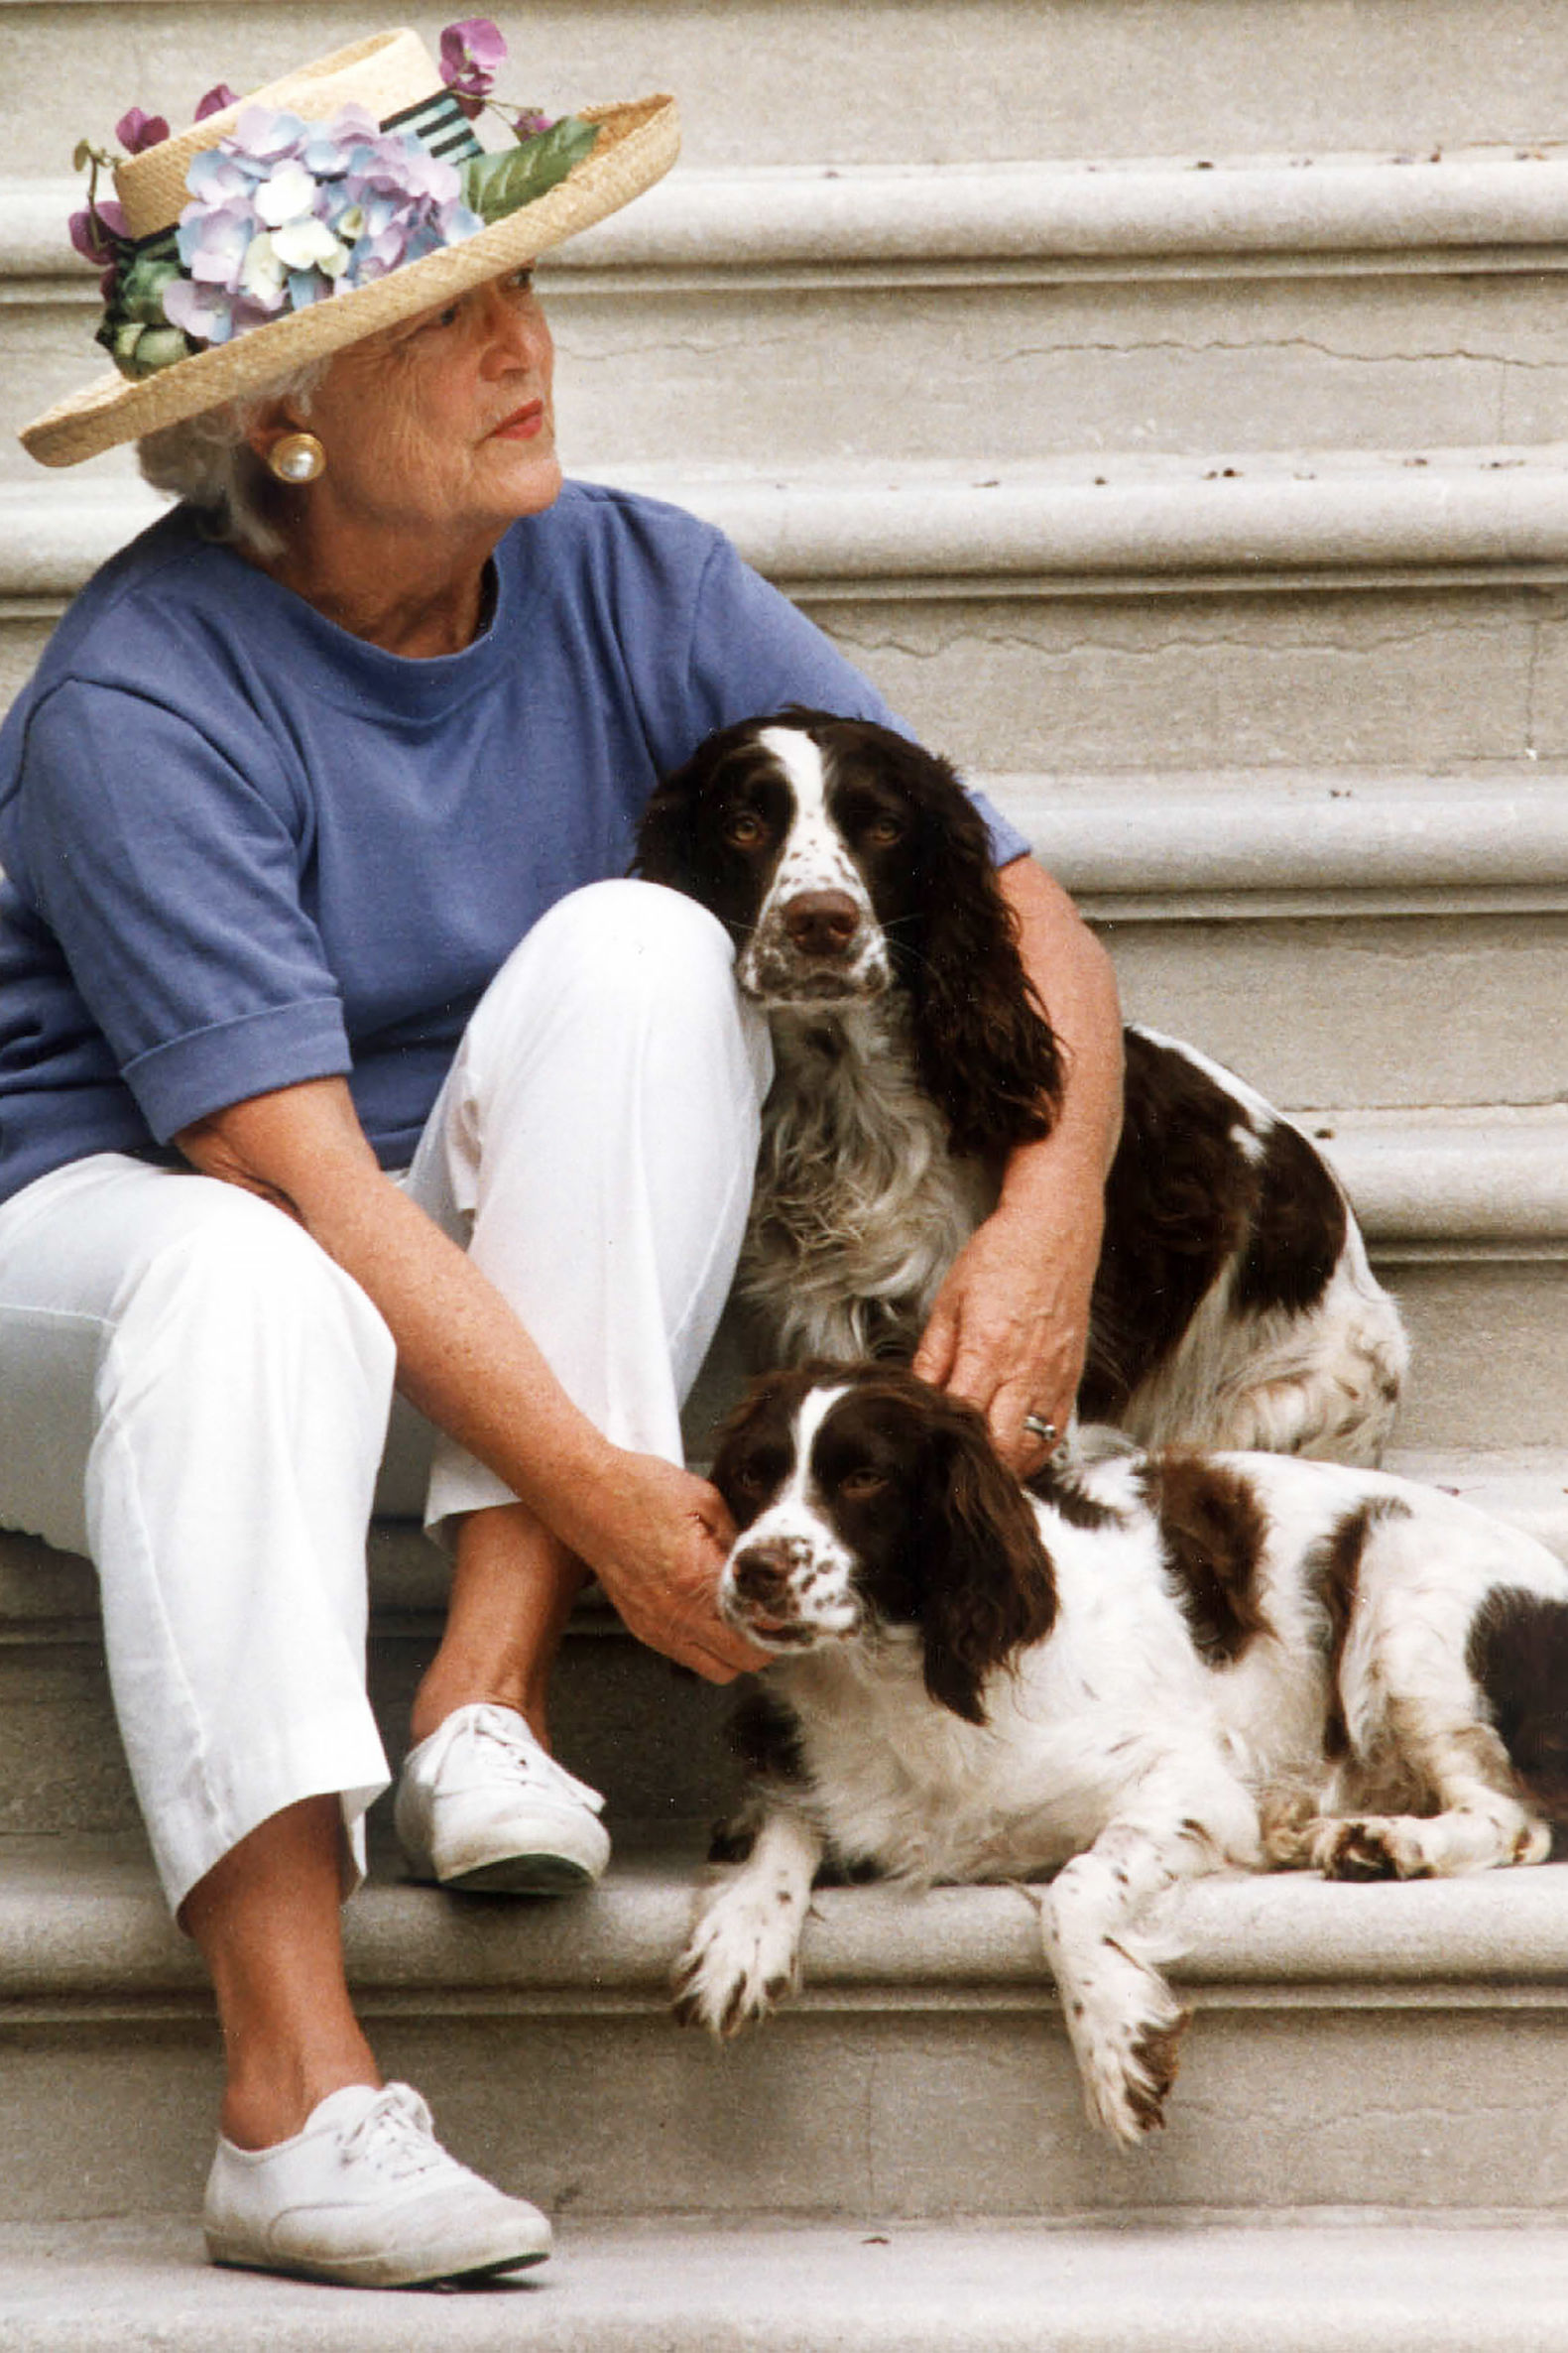 This Recently Unearthed Photo of Barbara Bush and Her Dogs in Matching Outfits Is Beloved by Twitter